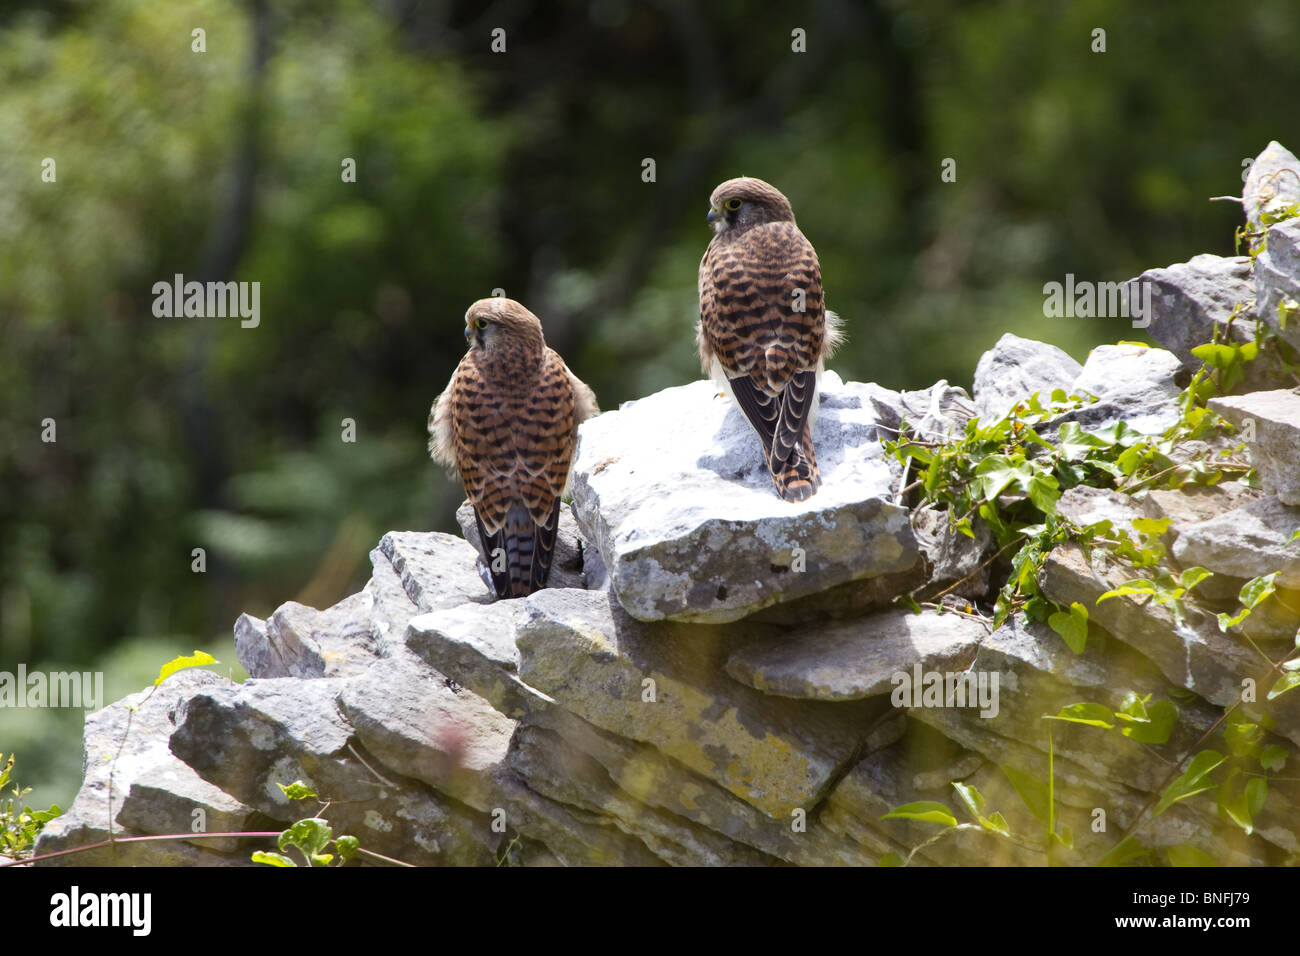 Pair of kestrels on a dry stone wall. - Stock Image